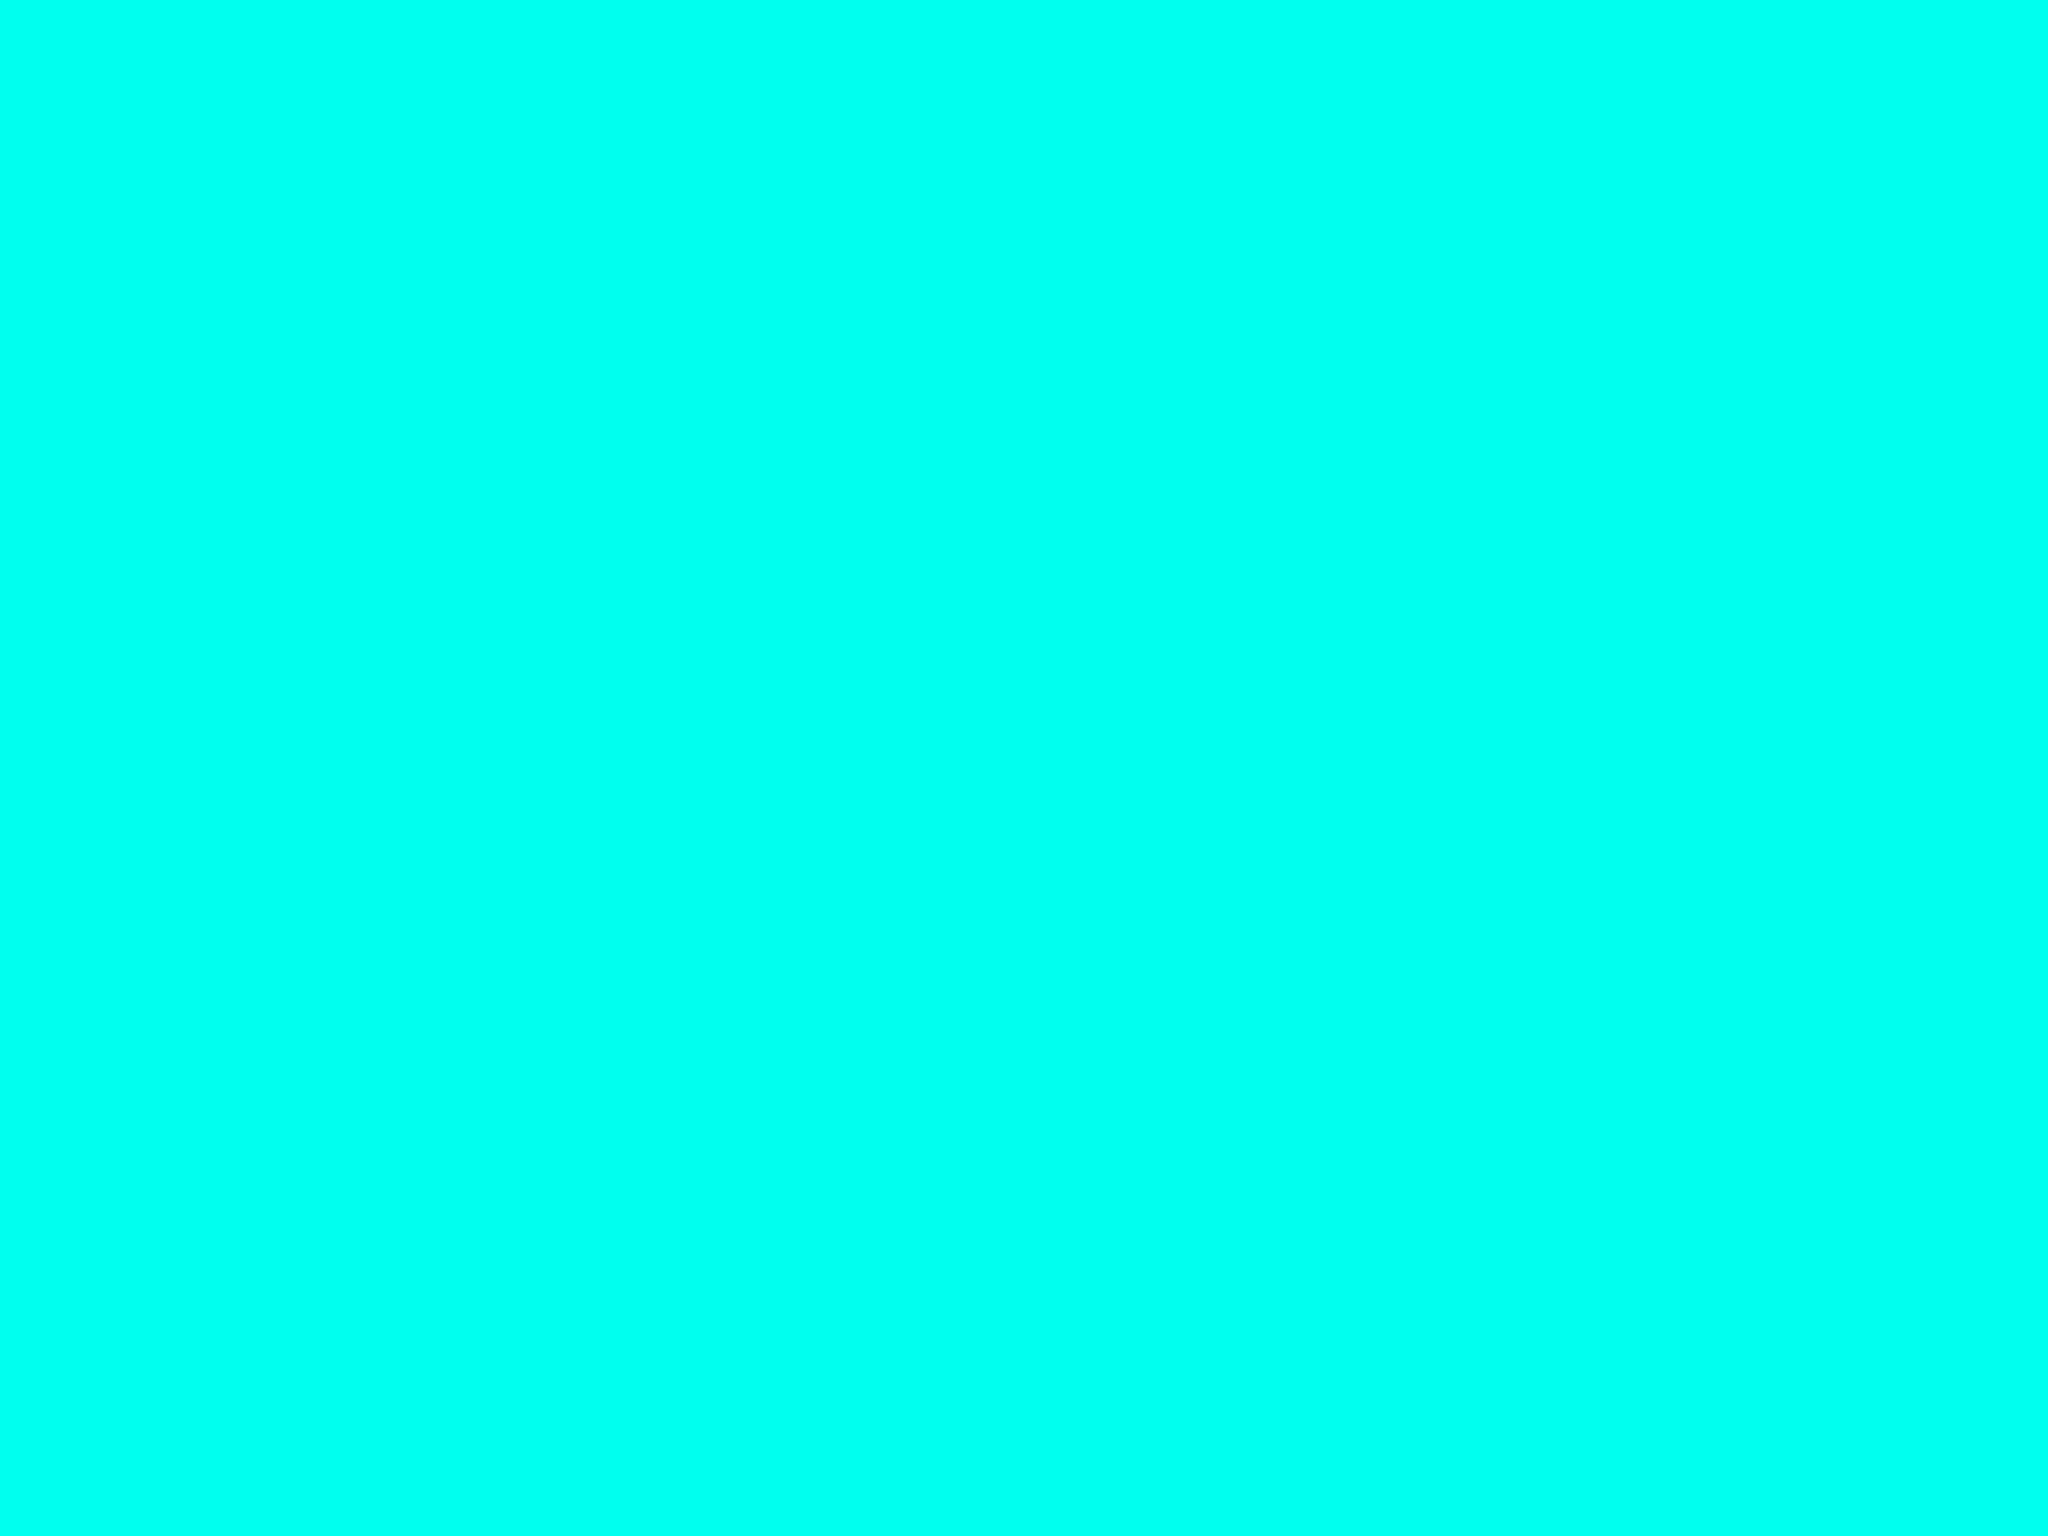 2048x1536 Turquoise Blue Solid Color Background